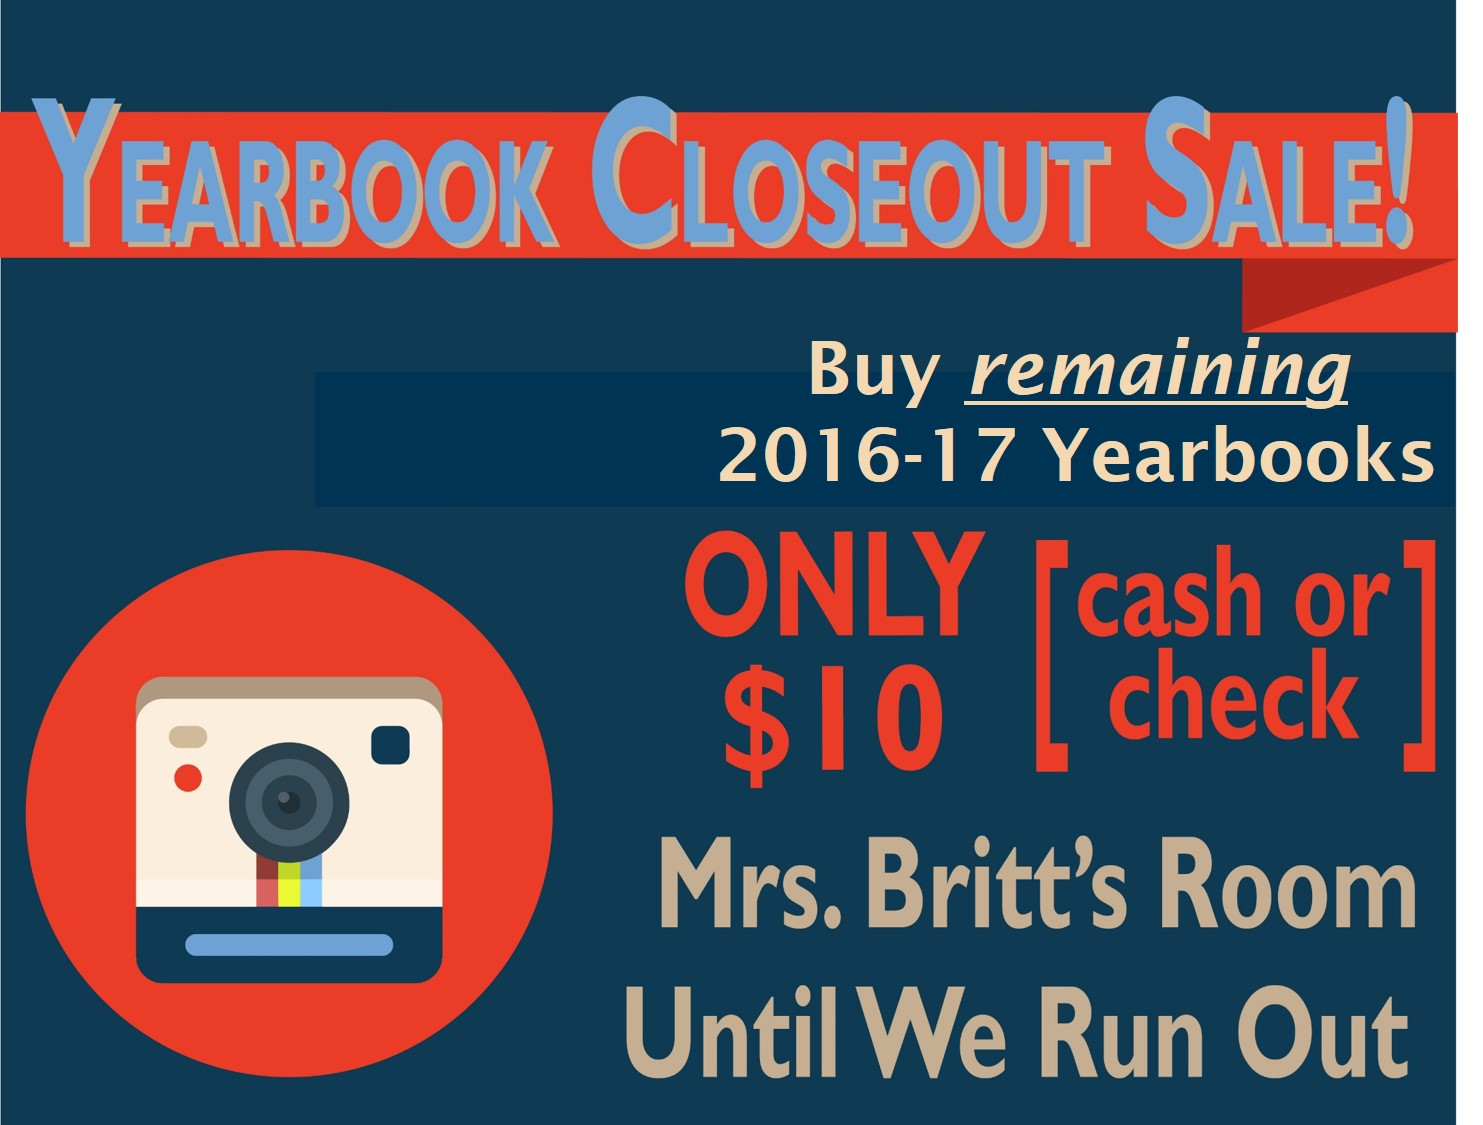 Yearbook-Closeout.jpg